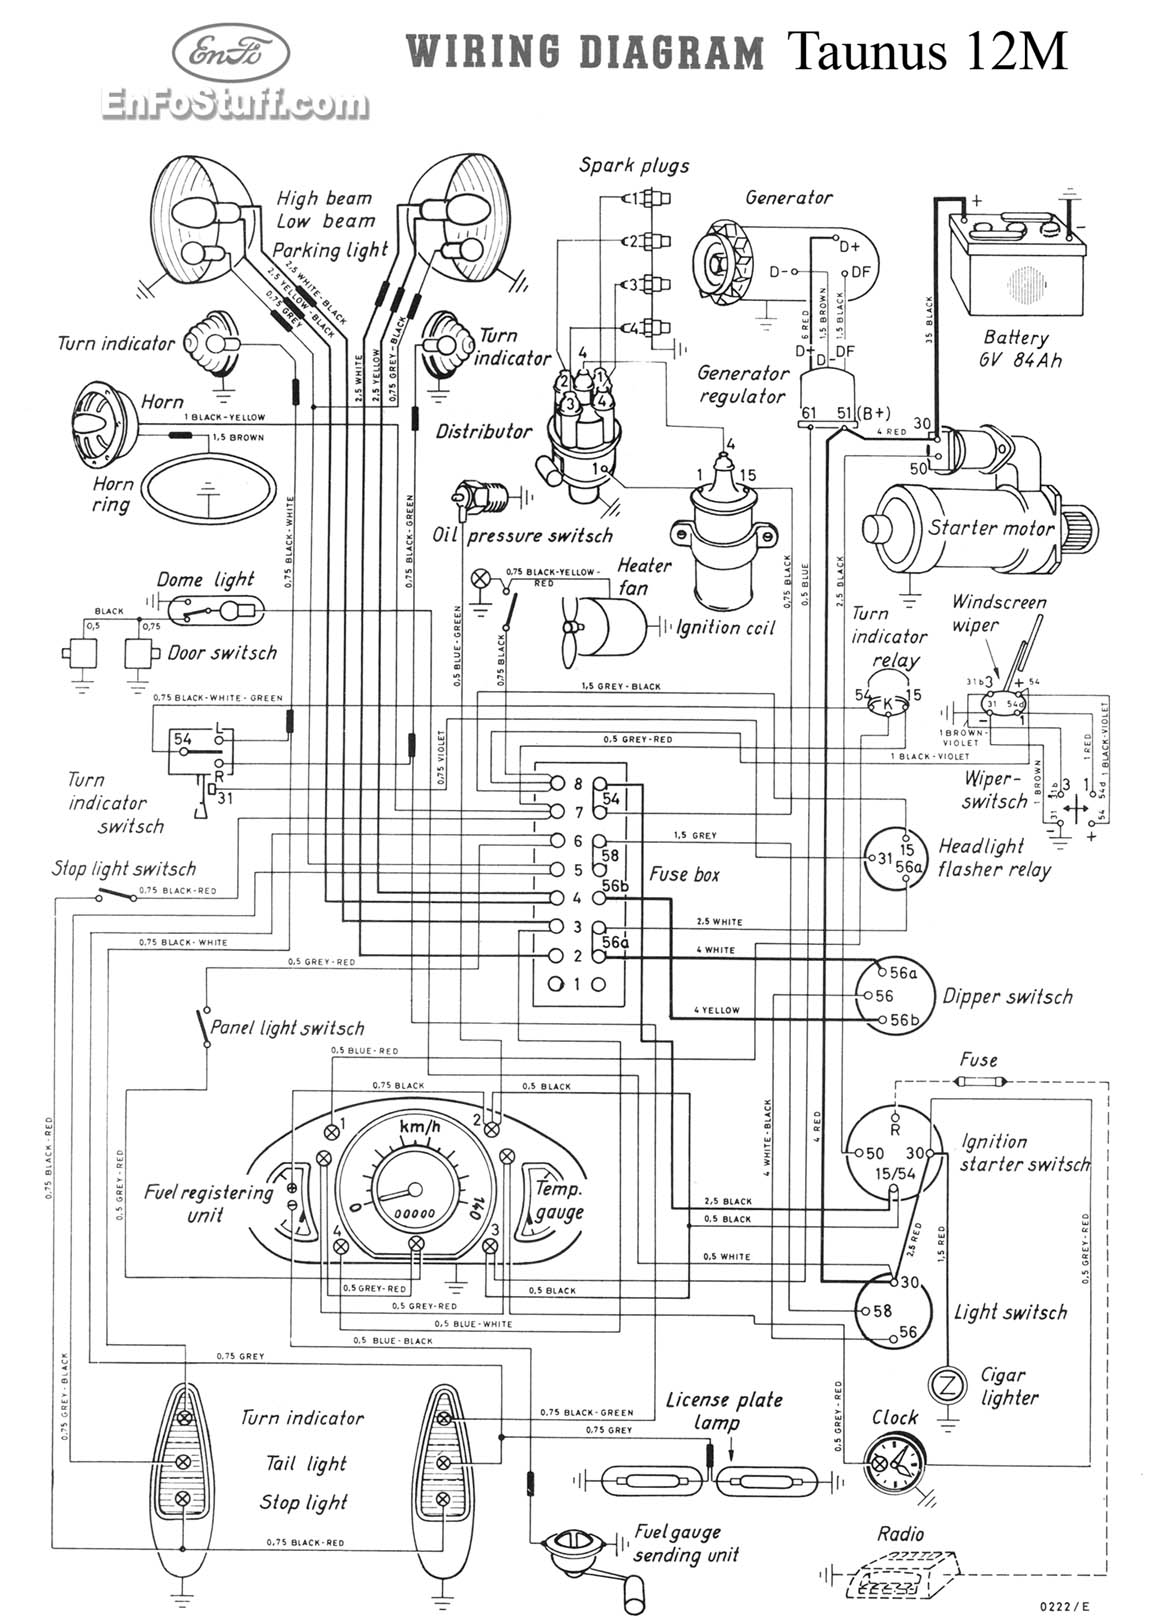 1997 Vw Jettum Wiring Diagram